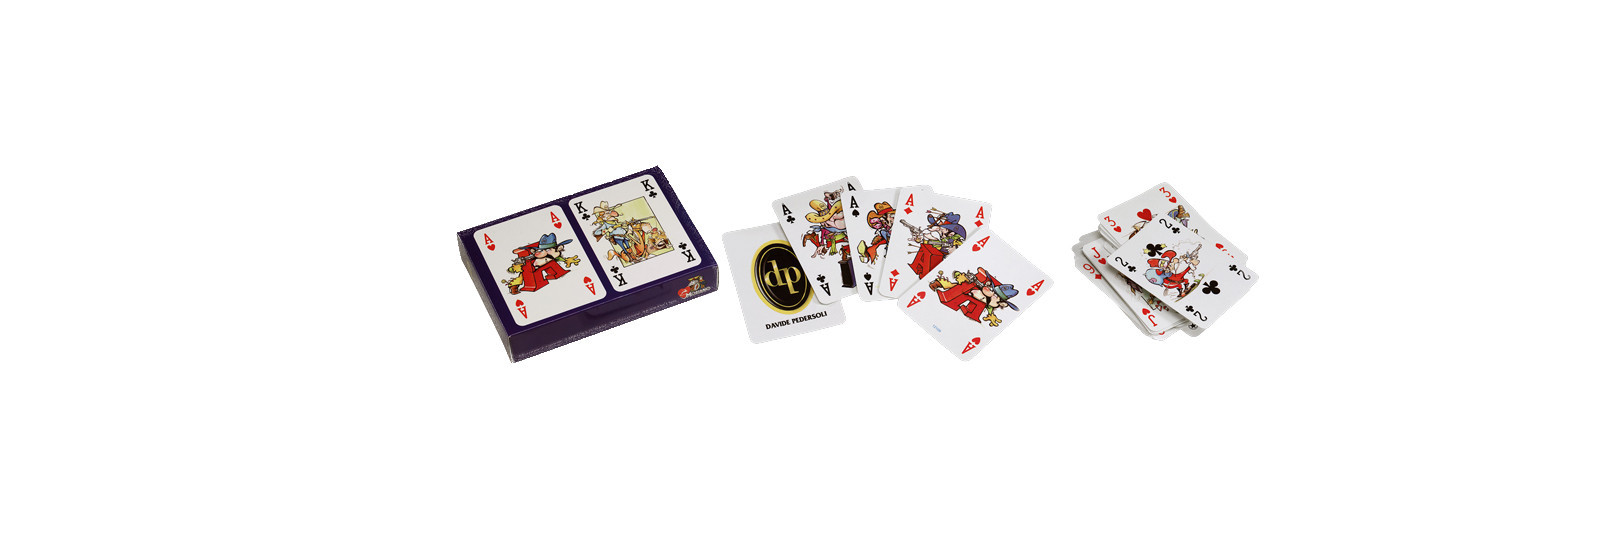 """Pedersoli 50°"" playing cards"